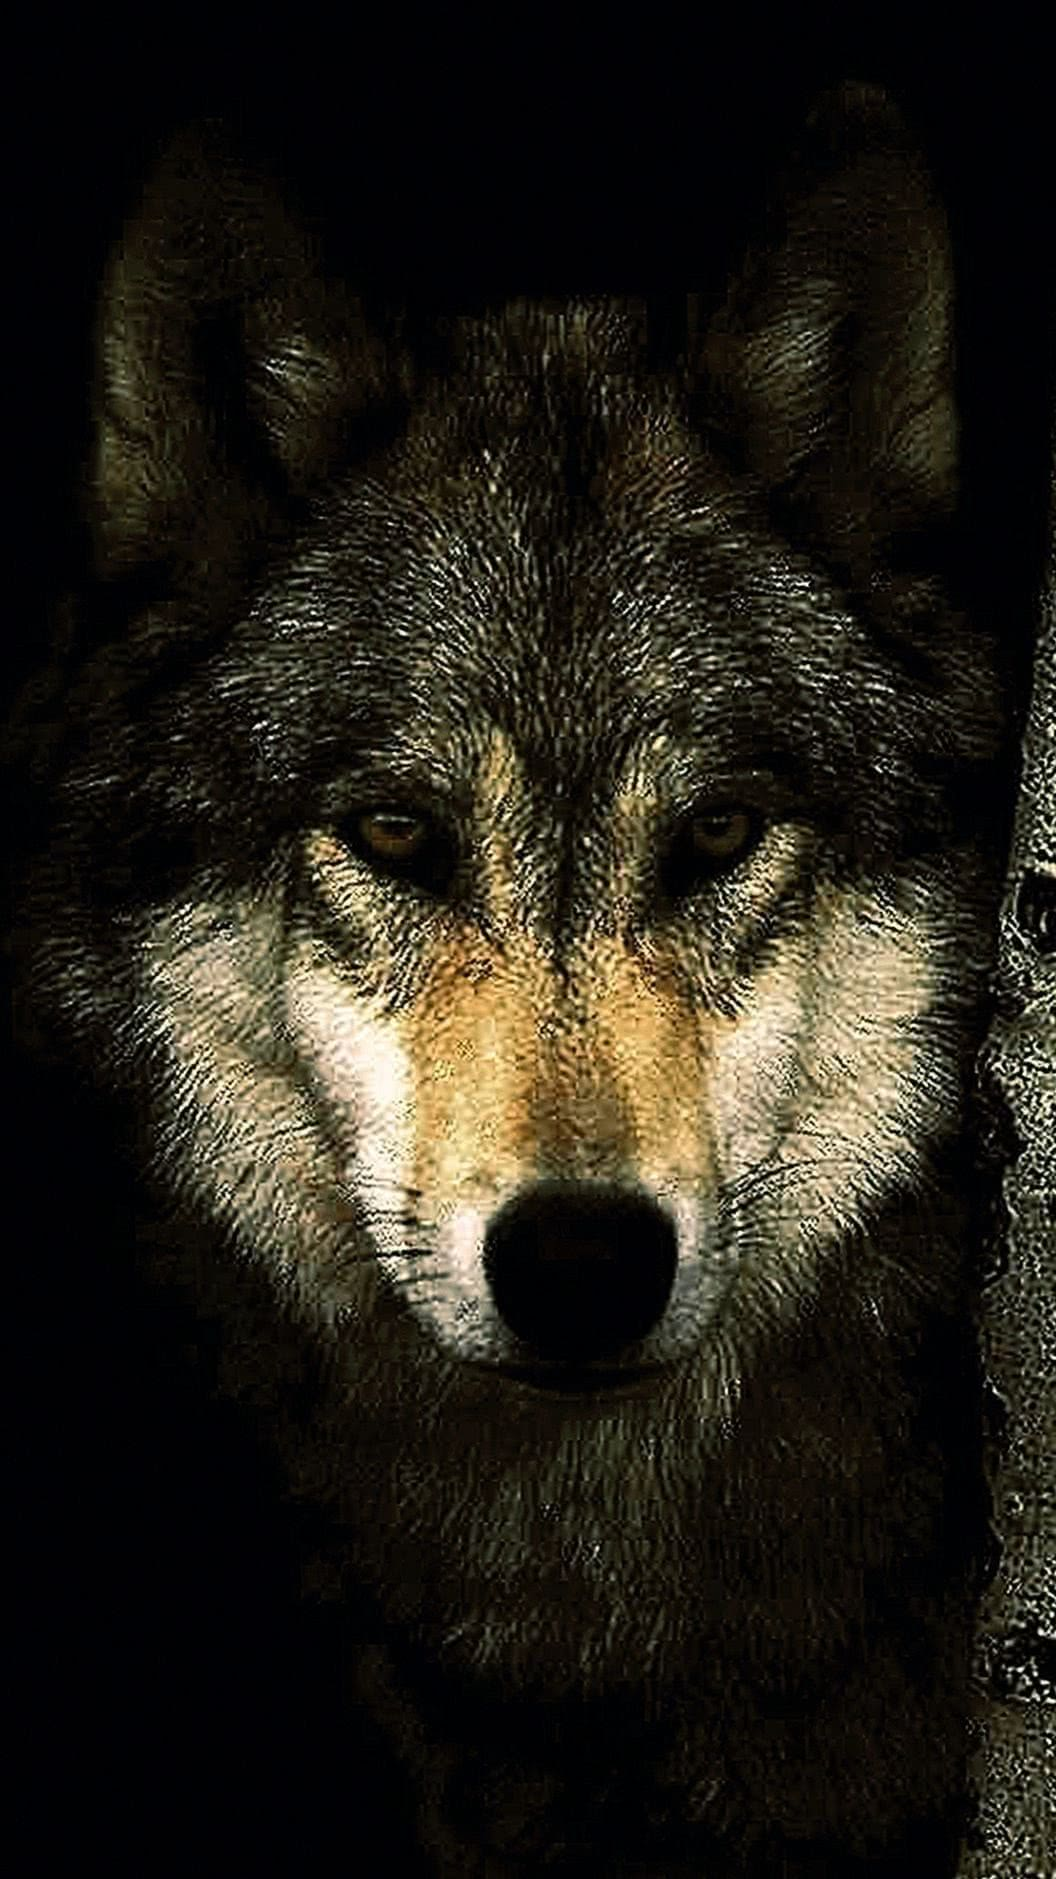 HD Wallpaper Of Wolf For Mobile